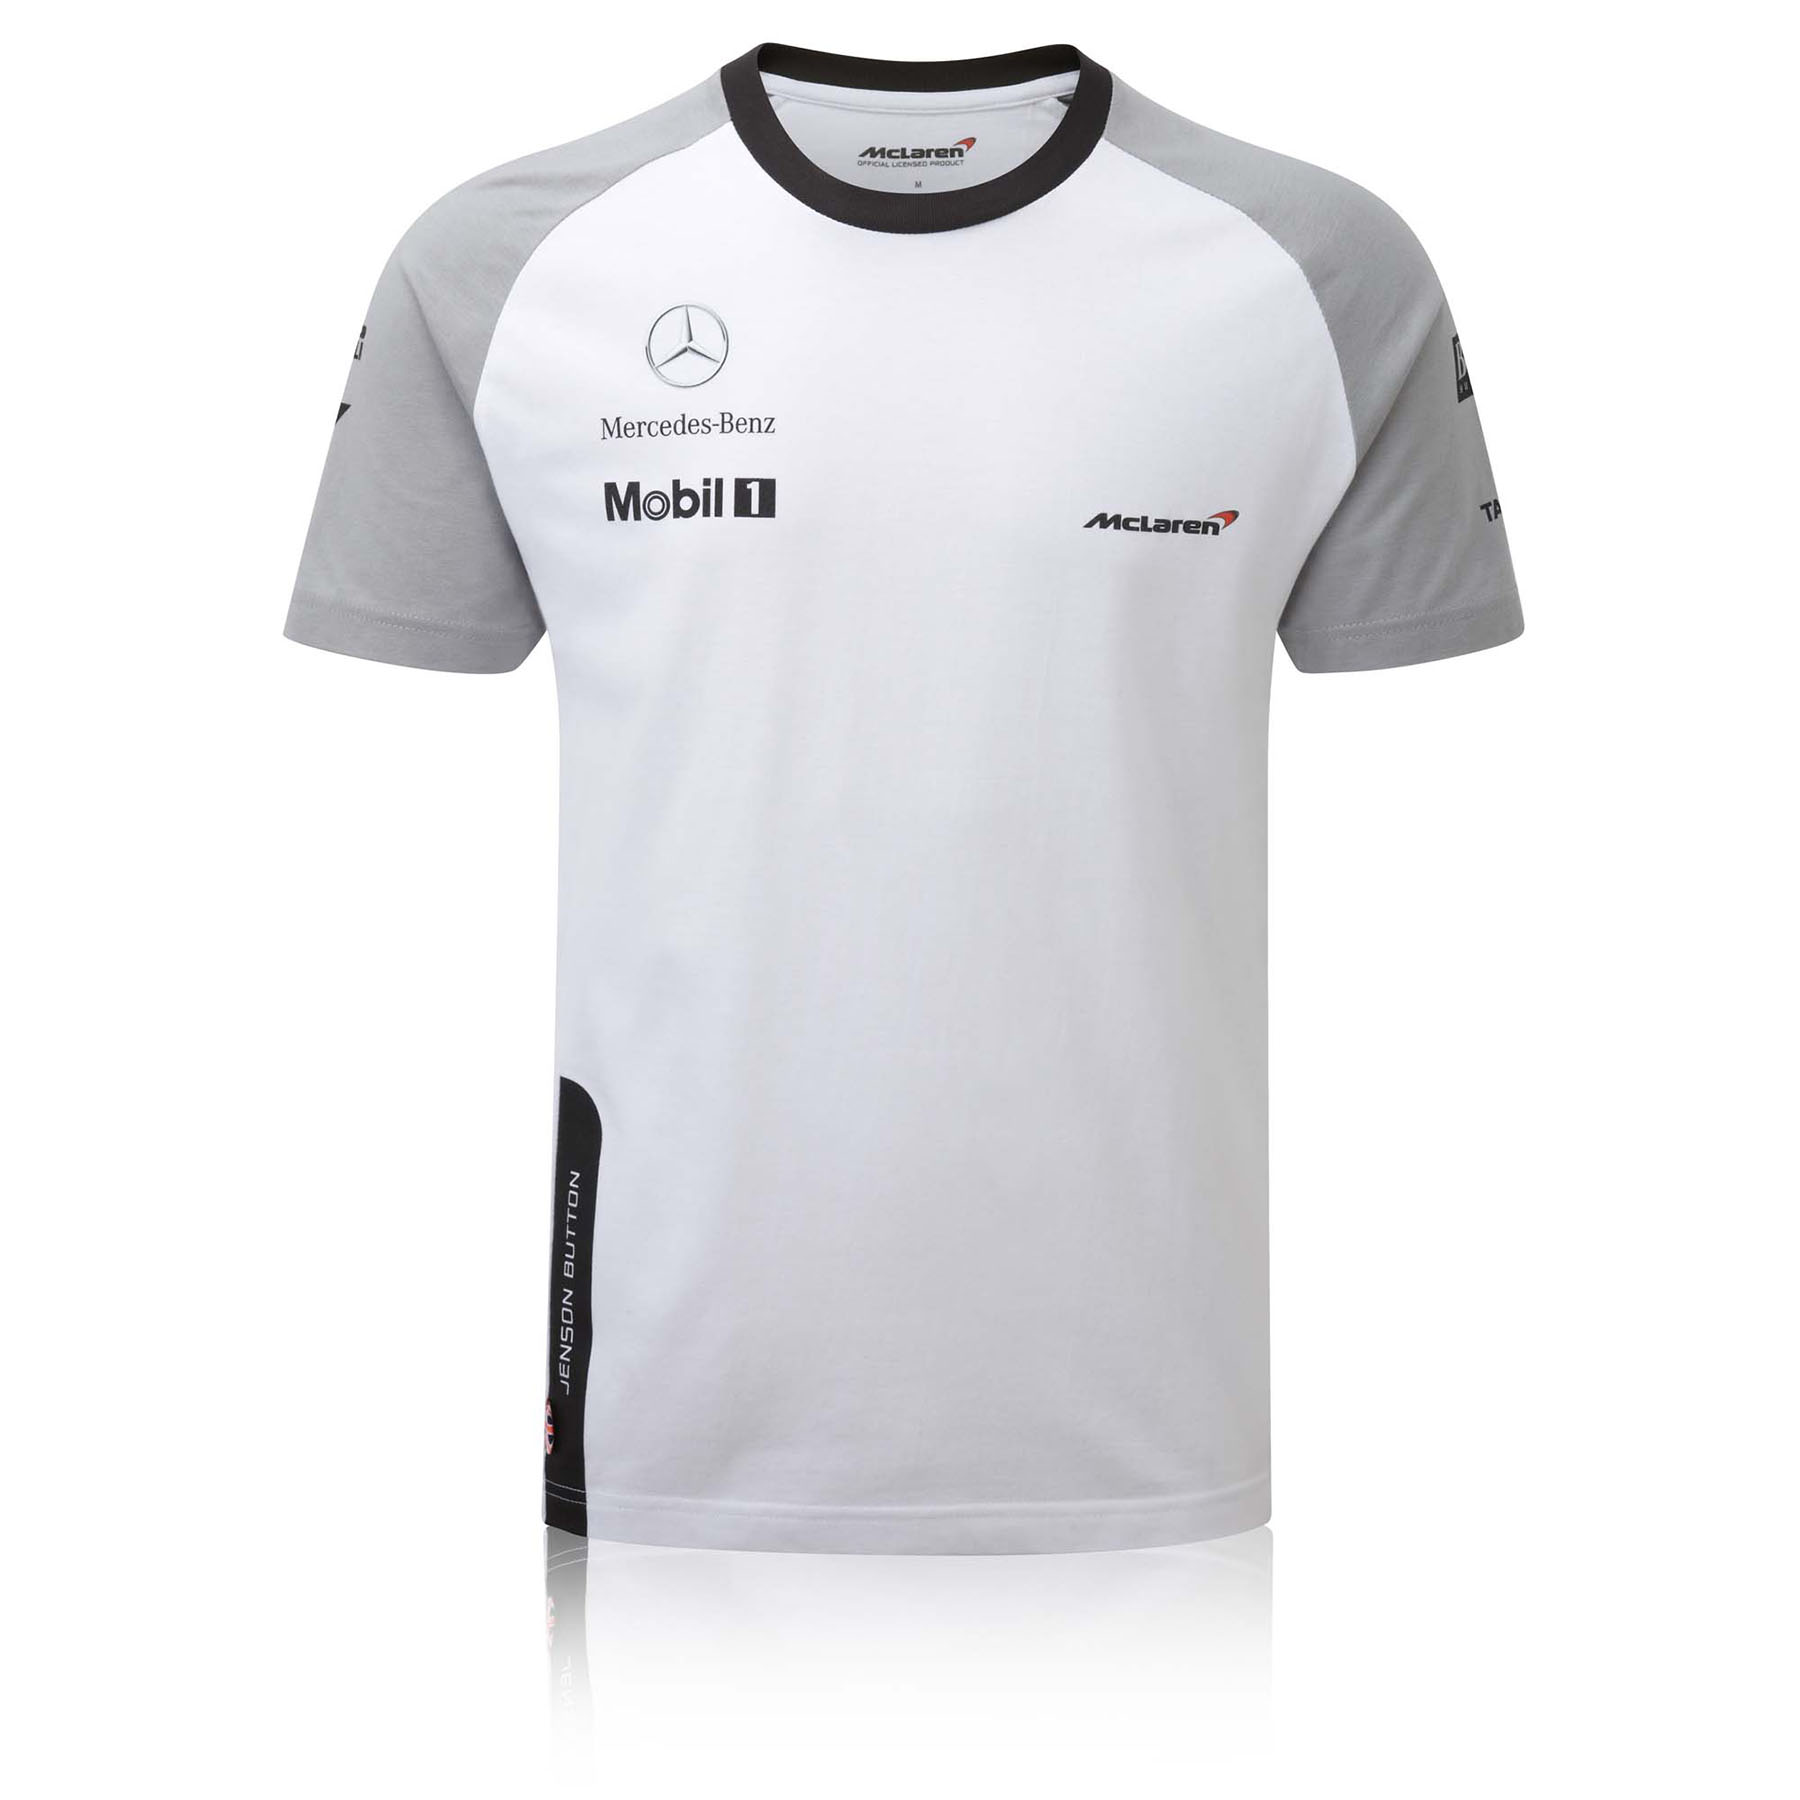 Team McLaren Button Team T-Shirt